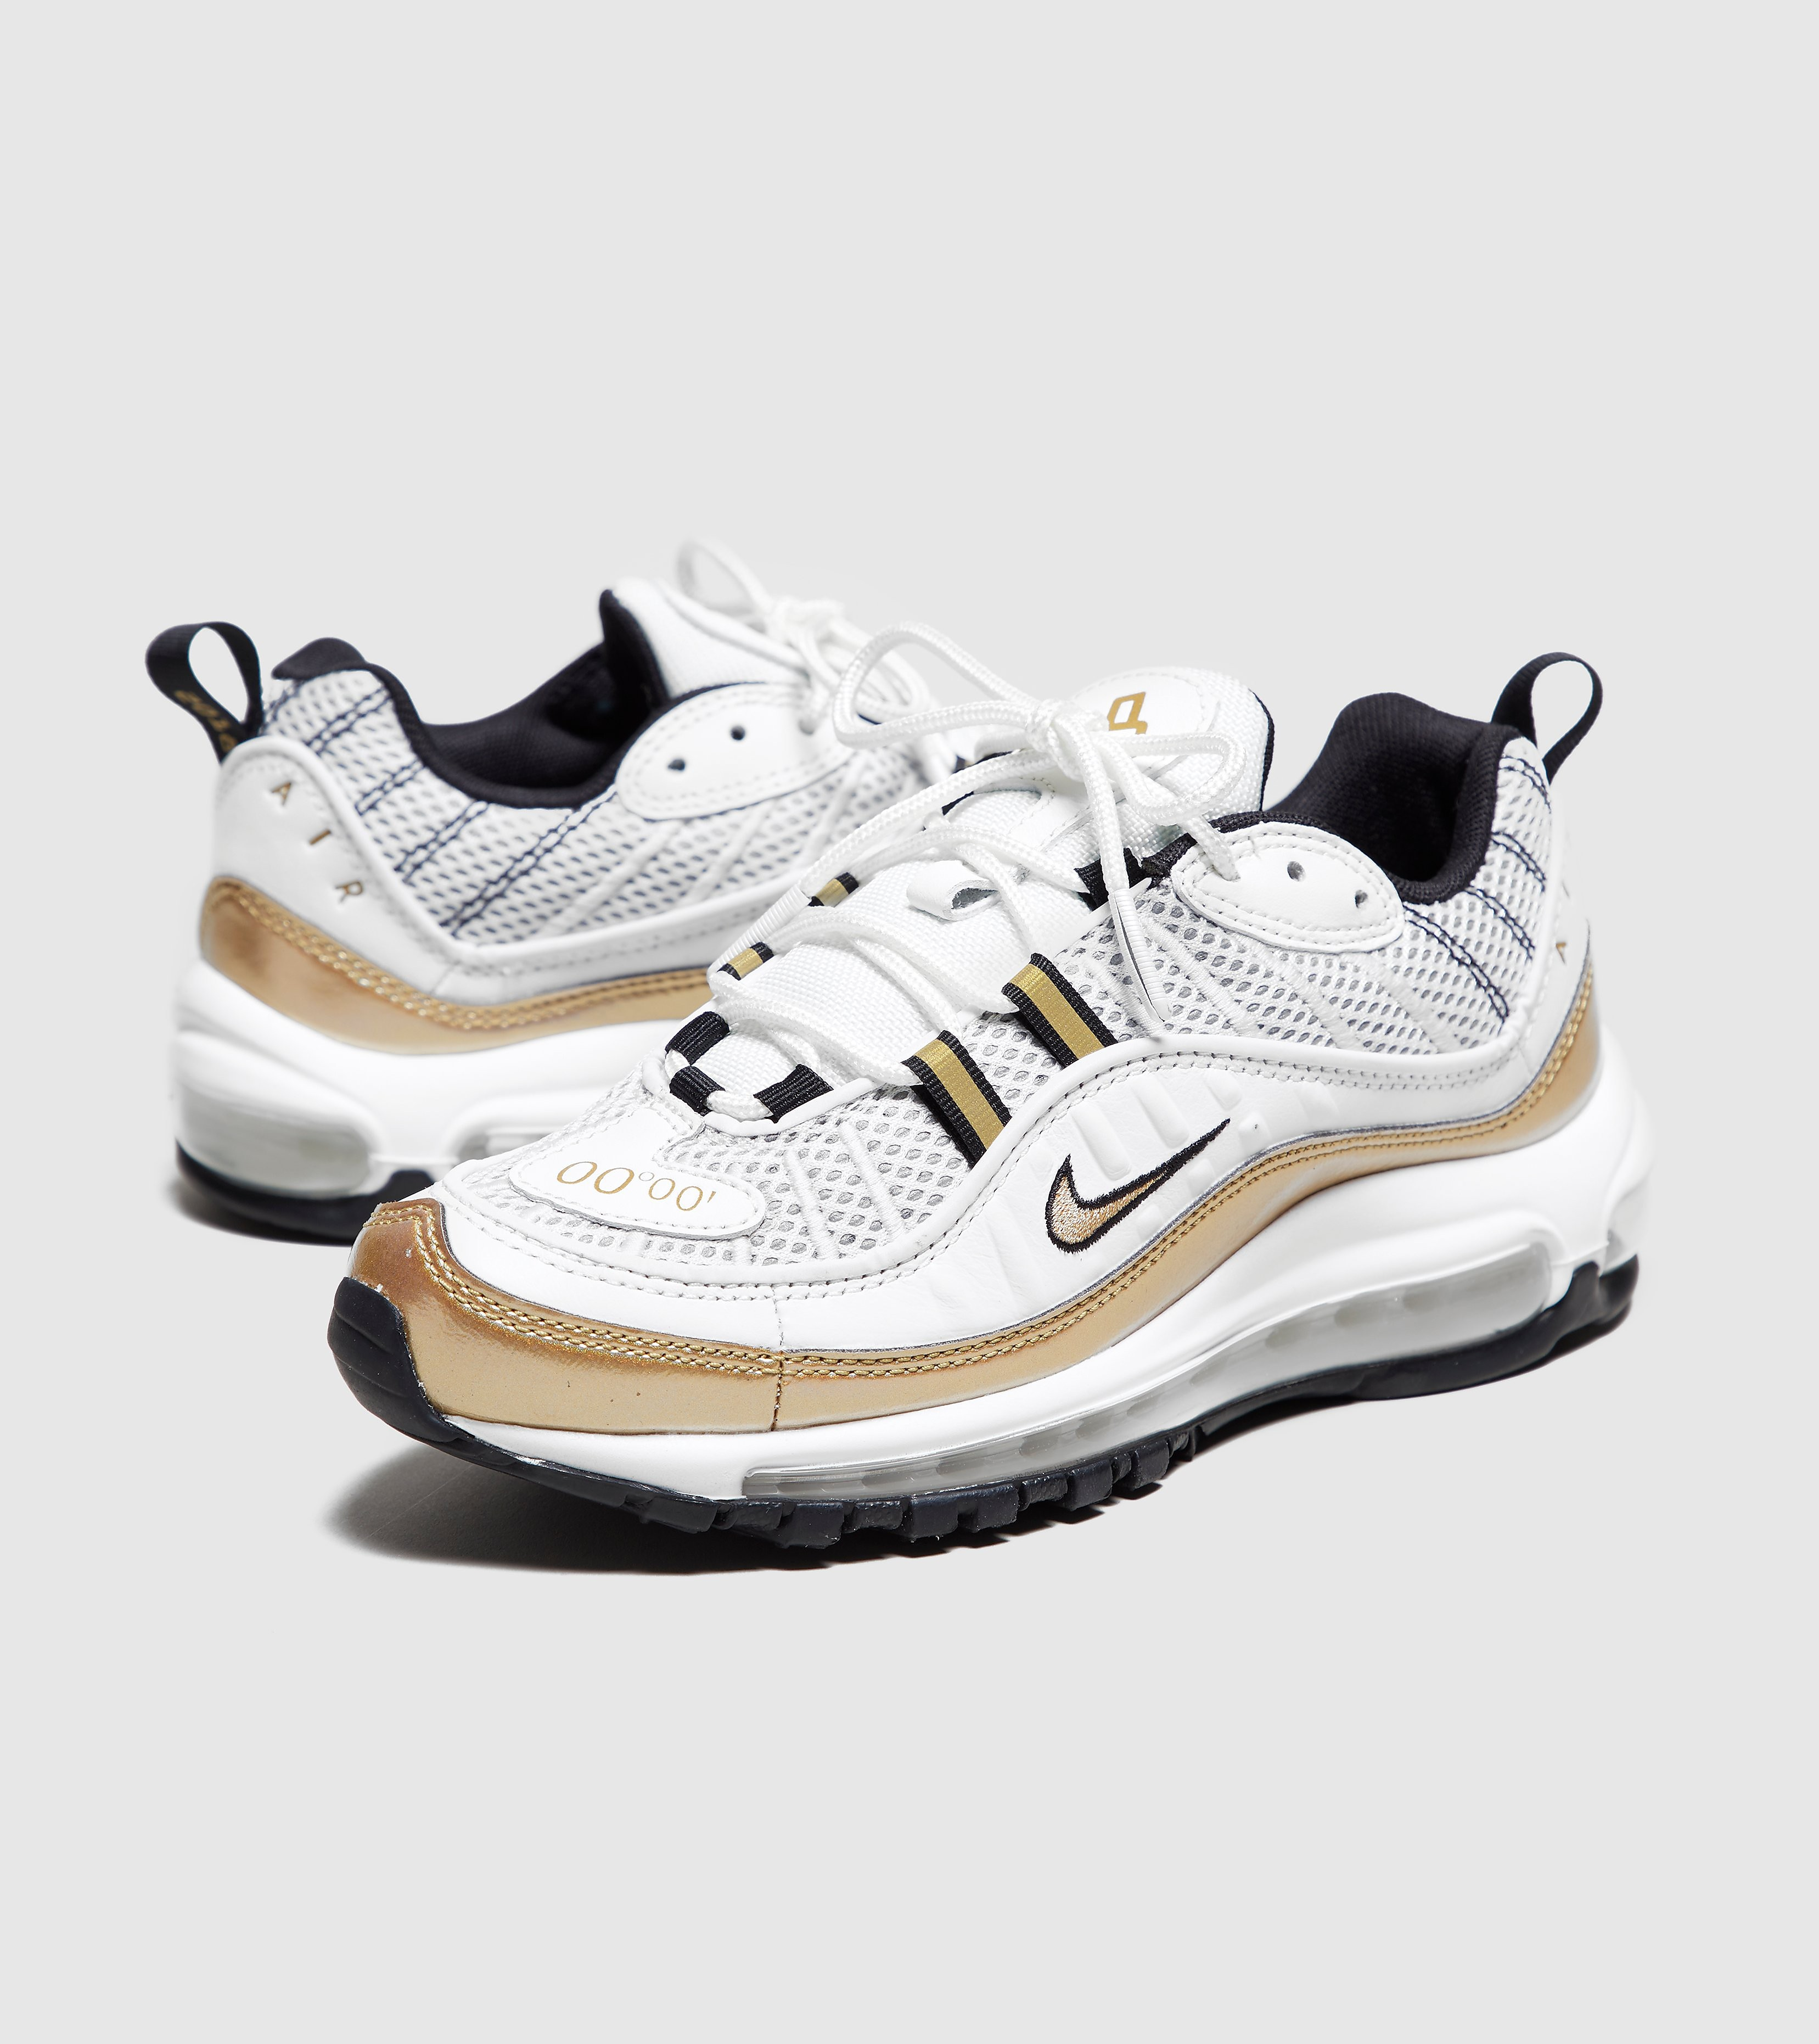 Nike Air Max 98 'GMT Pack' Women's